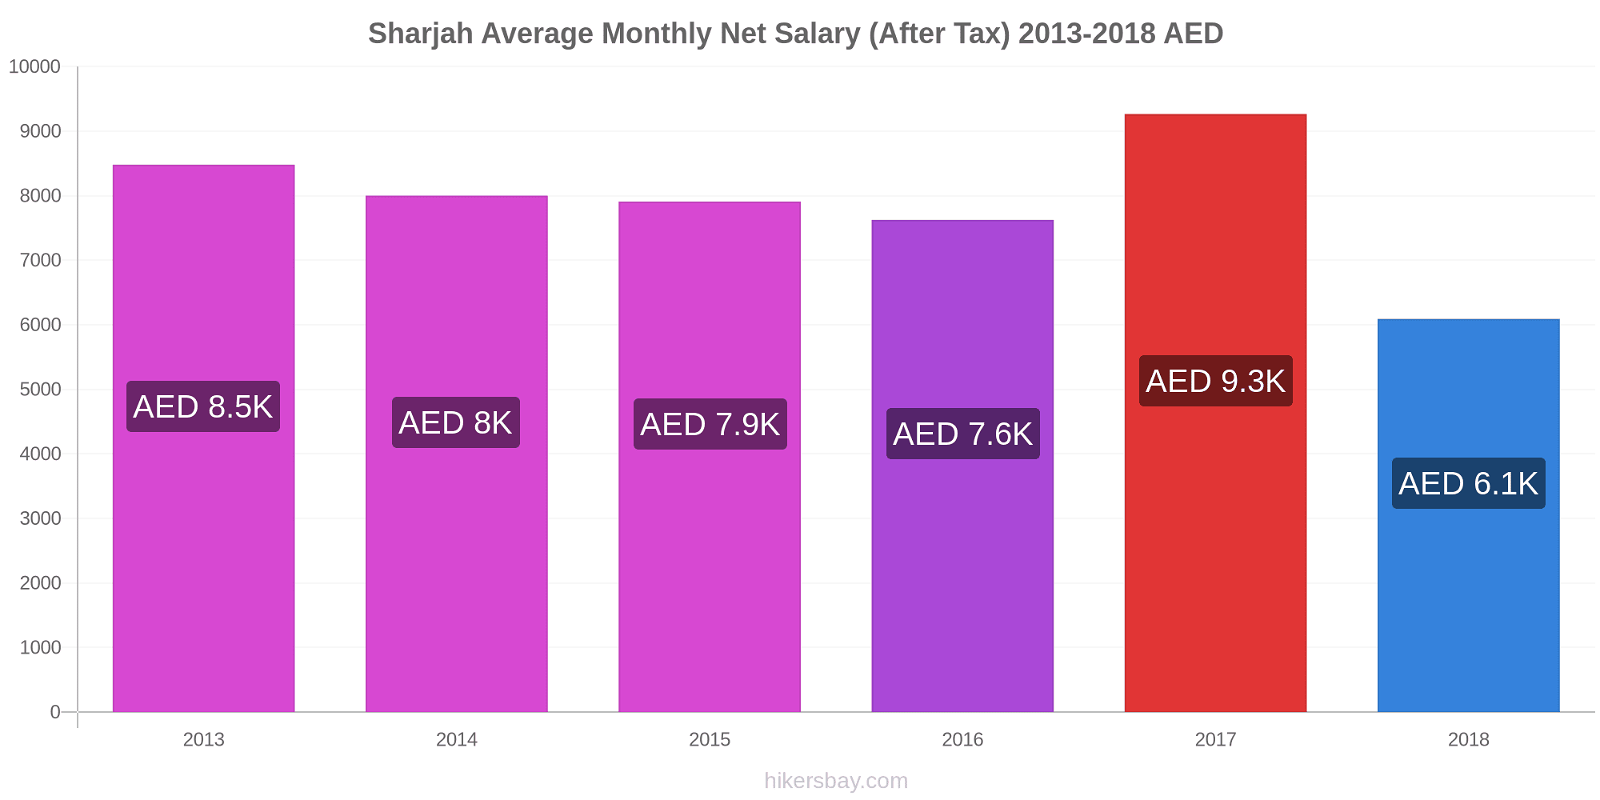 Sharjah price changes Average Monthly Net Salary (After Tax) hikersbay.com